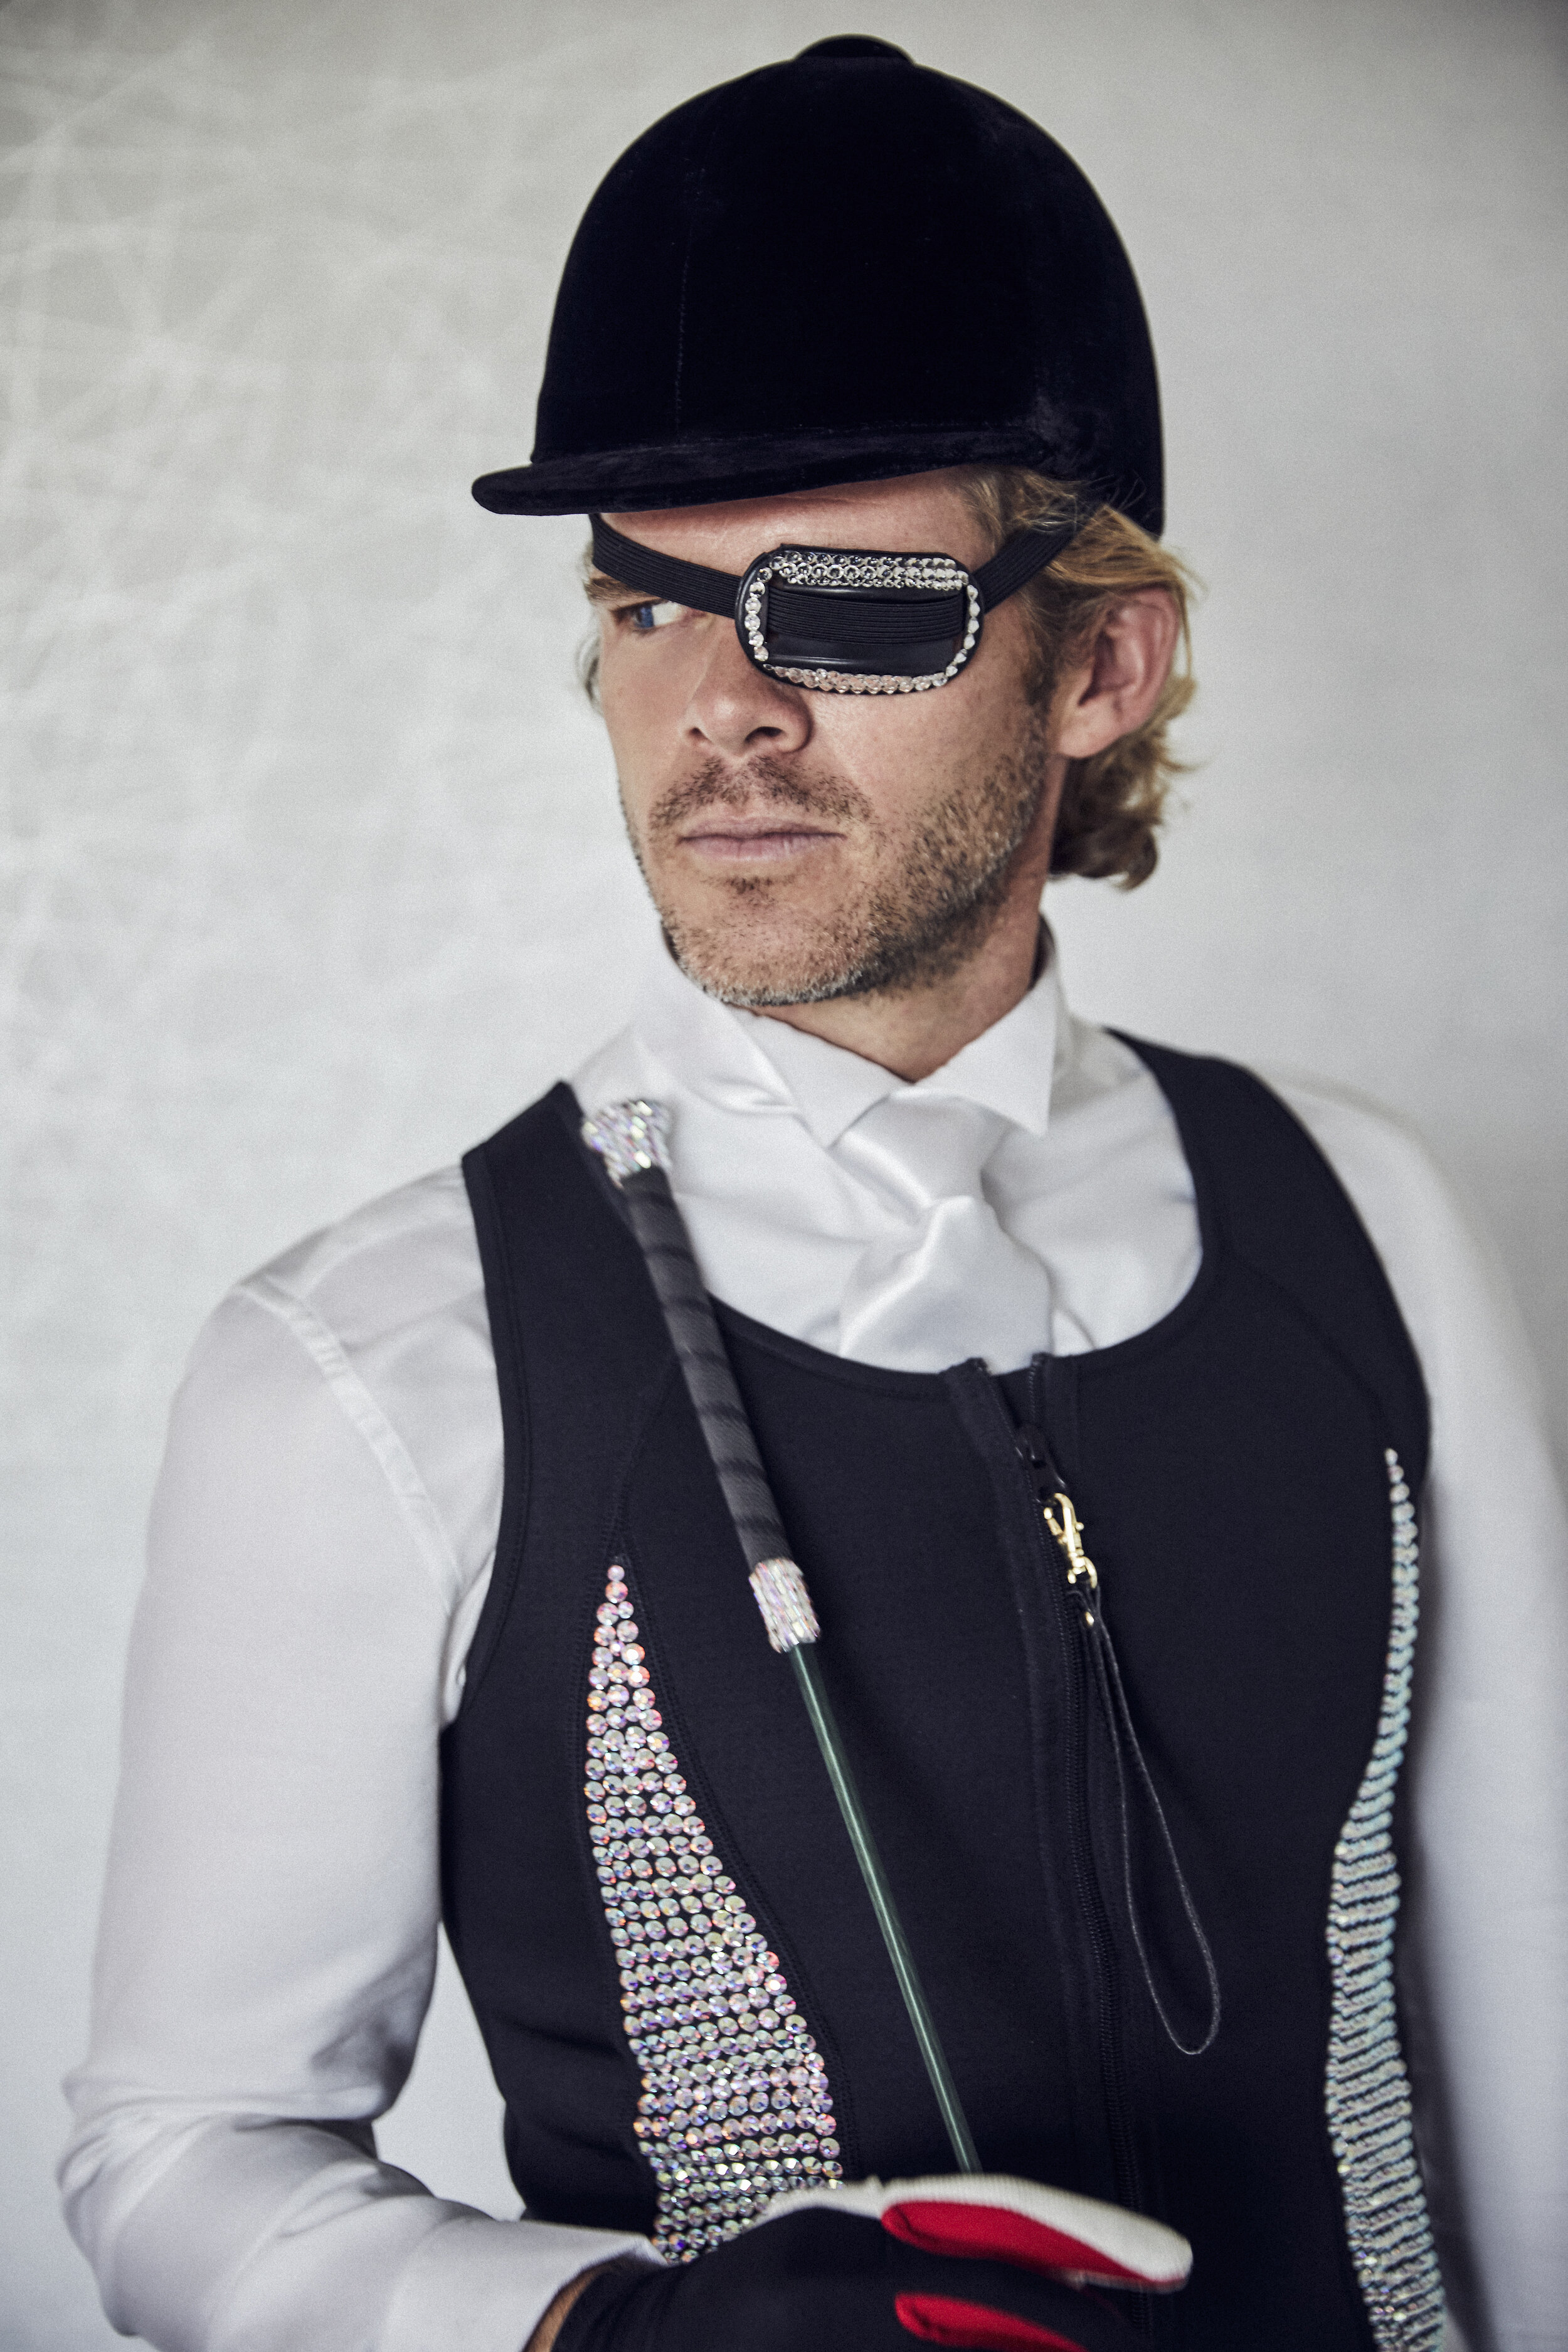 Black Neoprene Vest with Swarovski Crystals by  Michael Sui , White Shirt by  Zara , All Riding Accessories by  Michael Sui